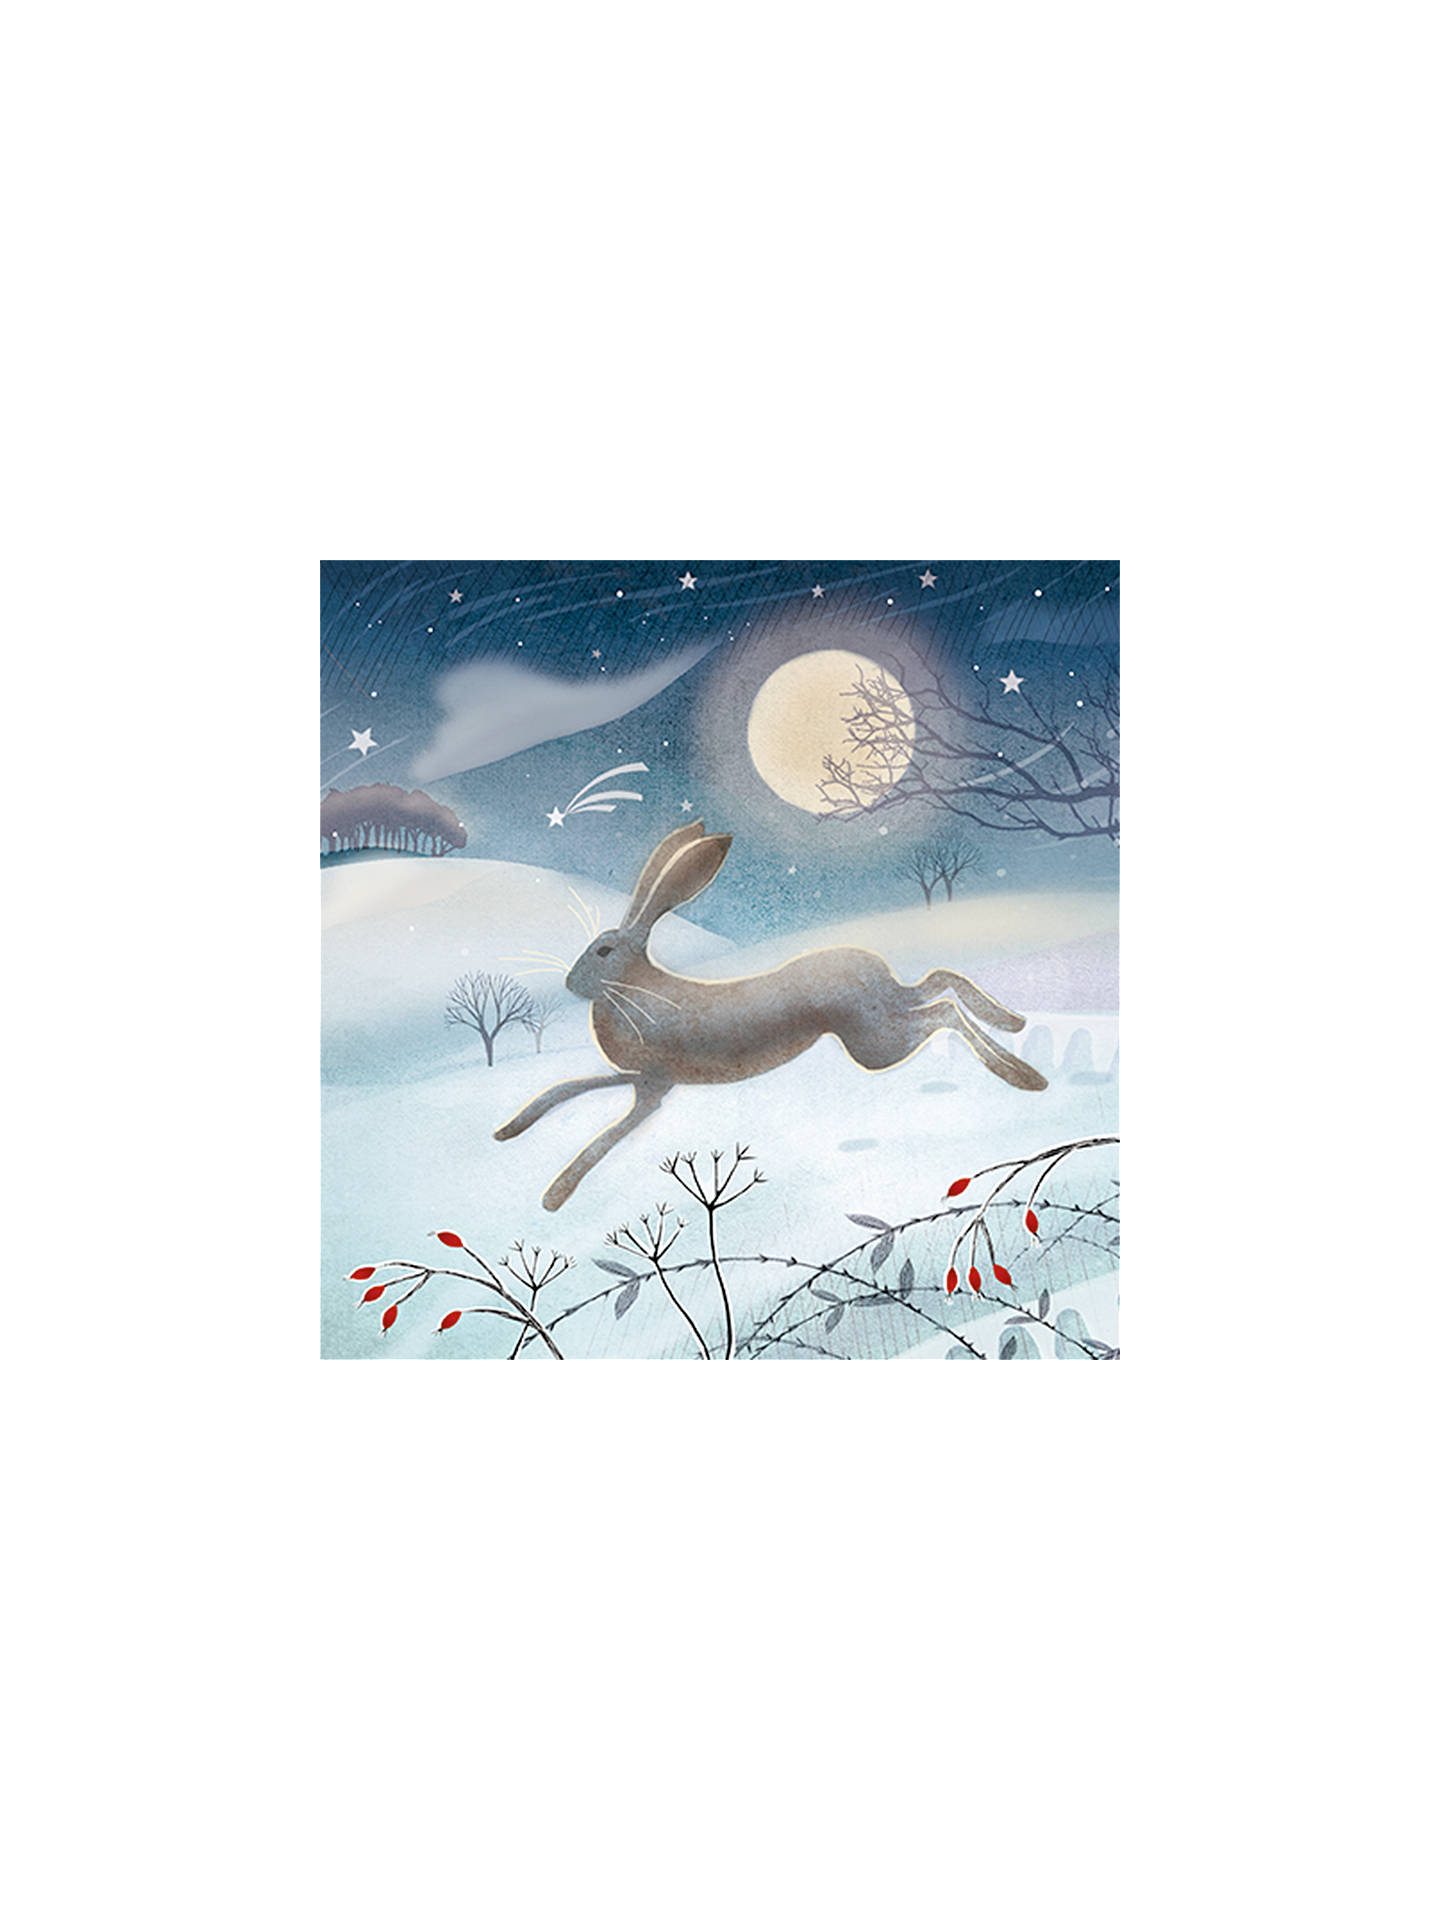 Buy The Almanac Gallery Leaping Hare Christmas Cards, Pack of 8 Online at johnlewis.com